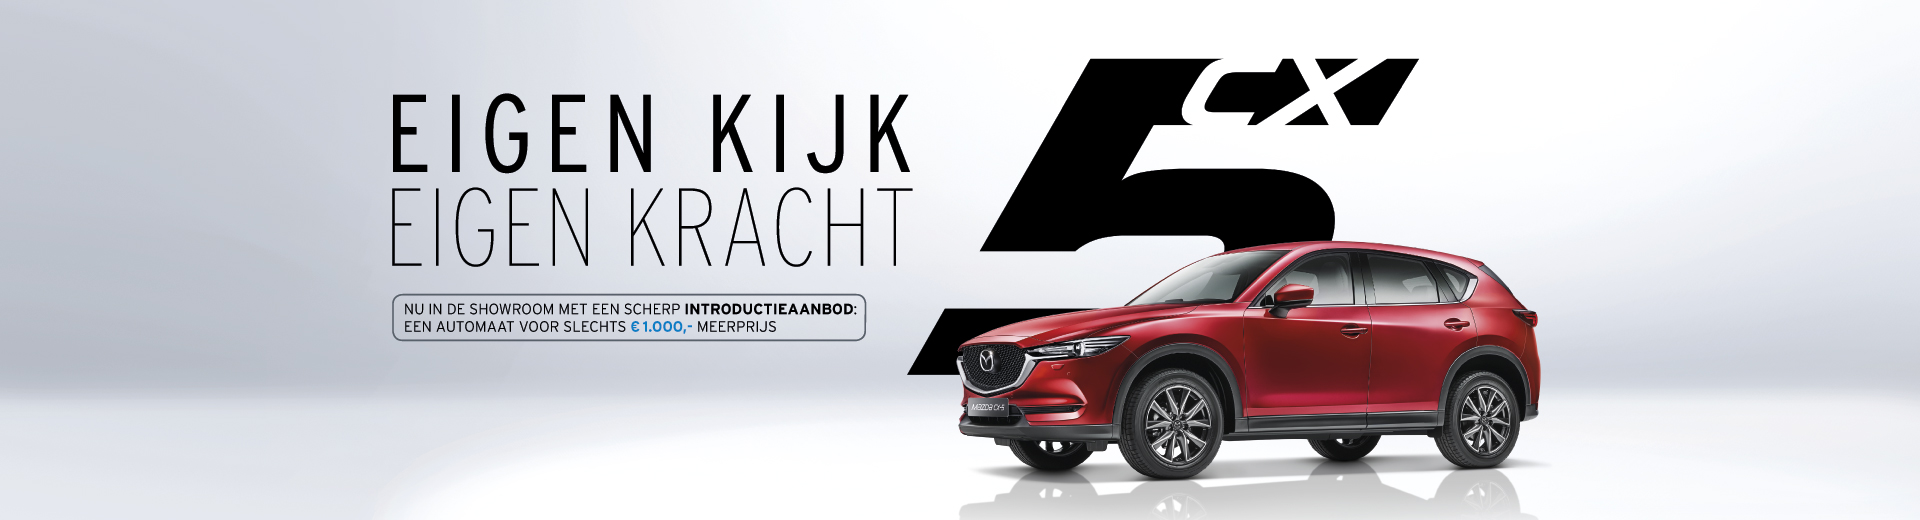 151.00.711-Banner-Mazda-CX-5-Product-1920x520px